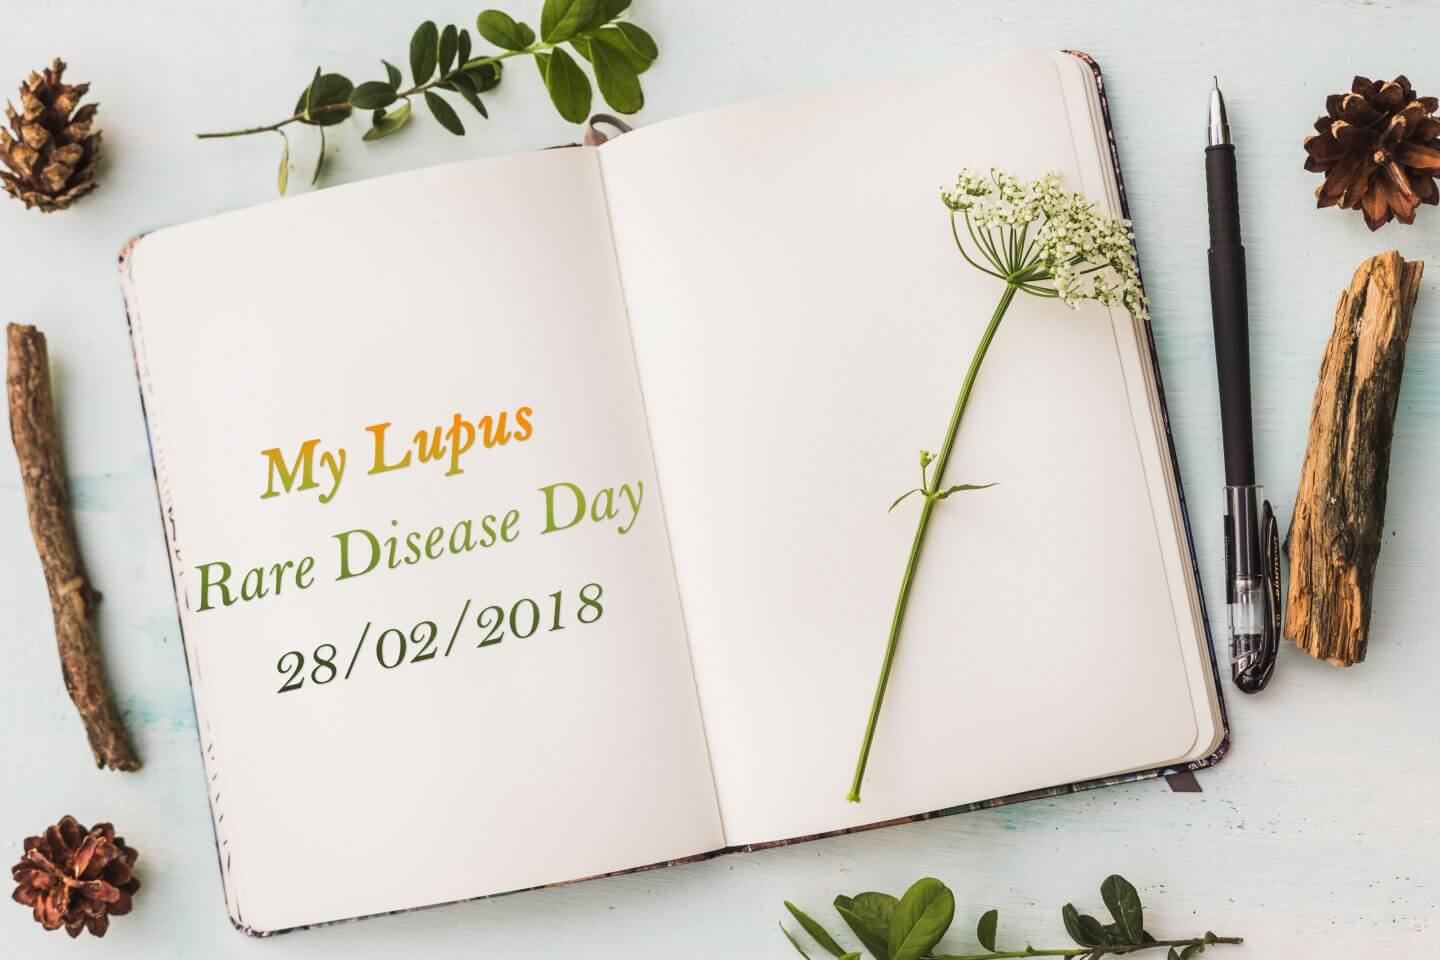 My Lupus | Rare Disease Day